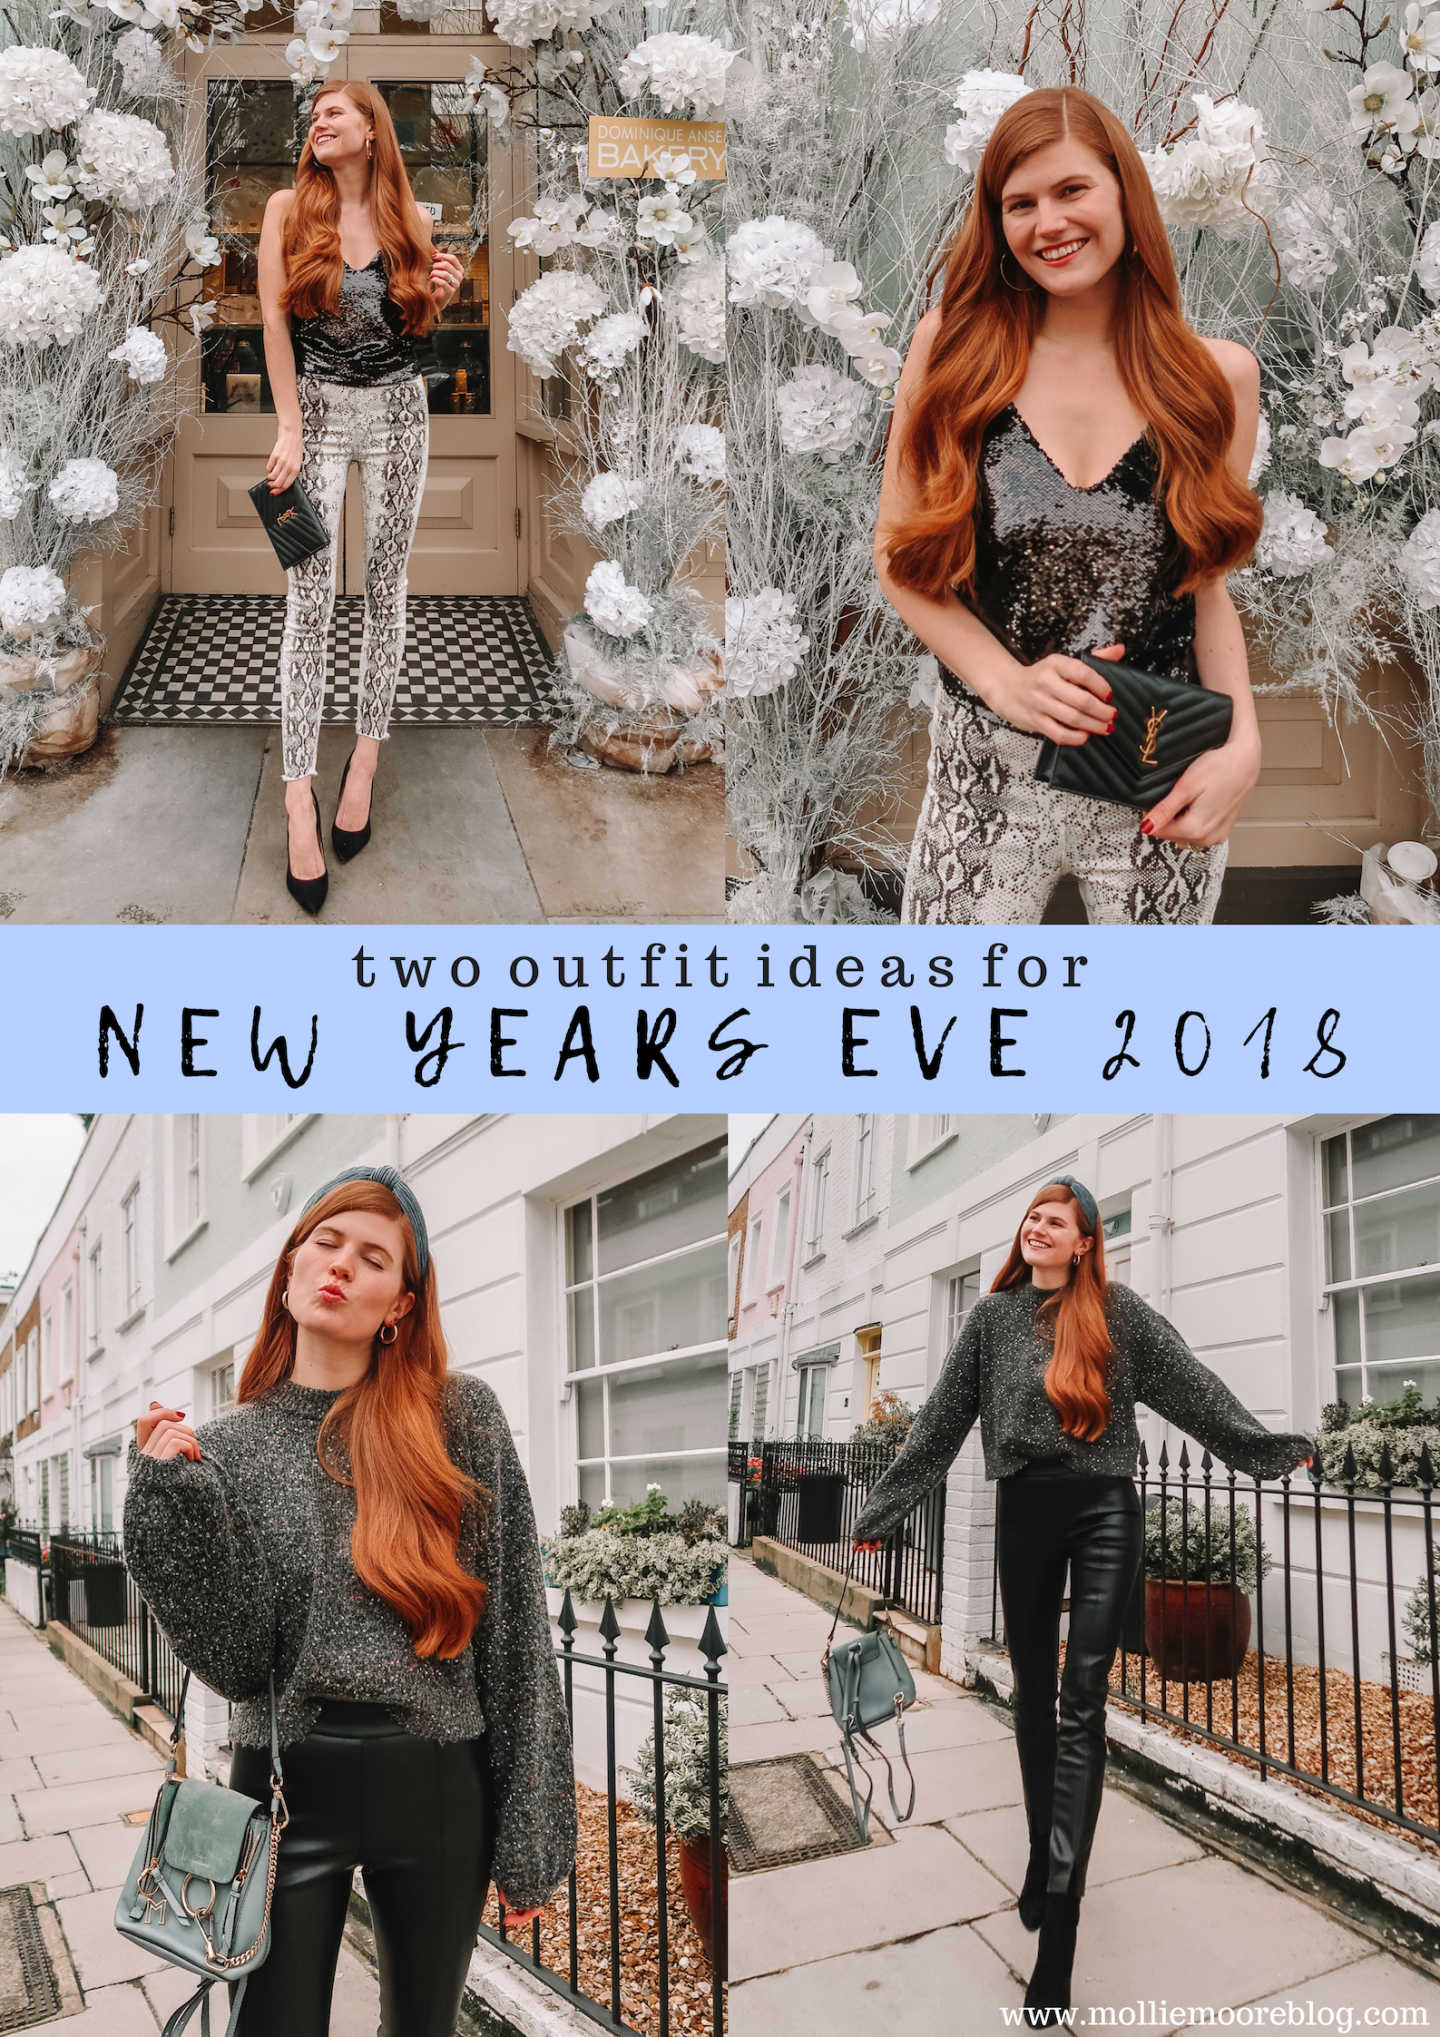 Lifestyle blogger Mollie Moore shares two different NYE outfit ideas